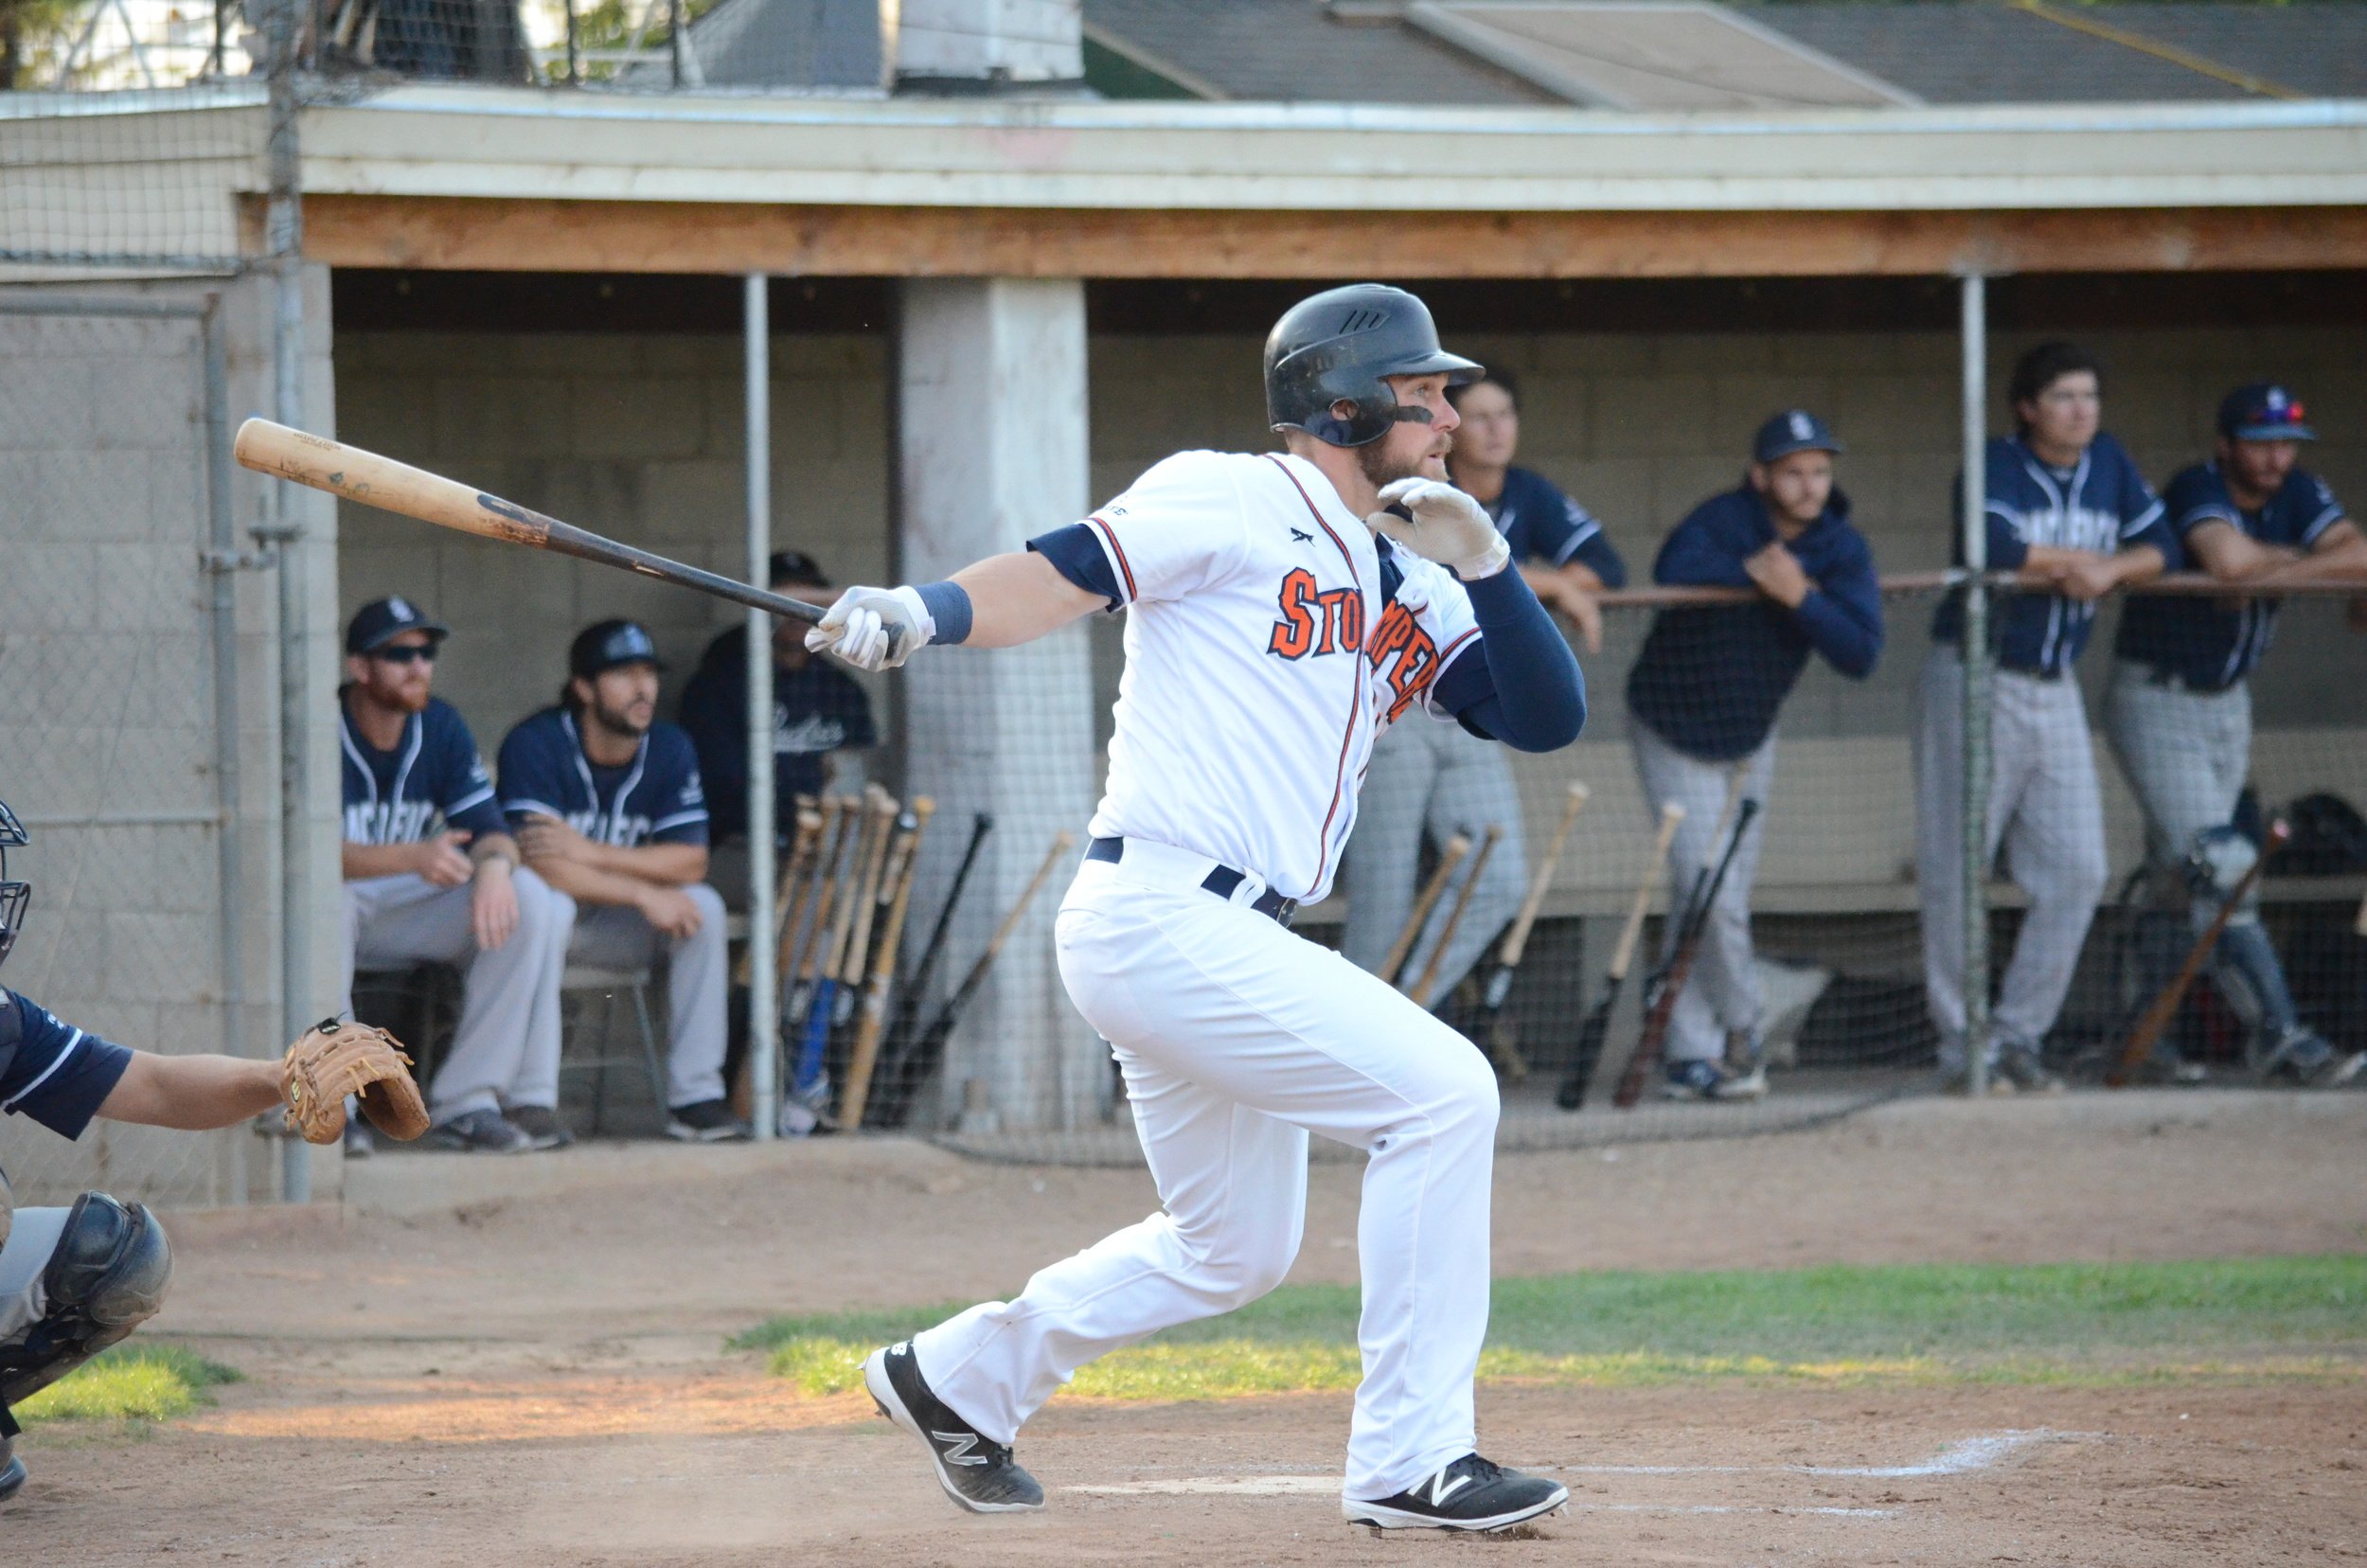 Scott David impressed in his home debut with a 4 for 4 performance Friday in a 13-4 win for the Stompers. David reached base in all five of this plate appearances.   James Toy III/Sonoma Stompers